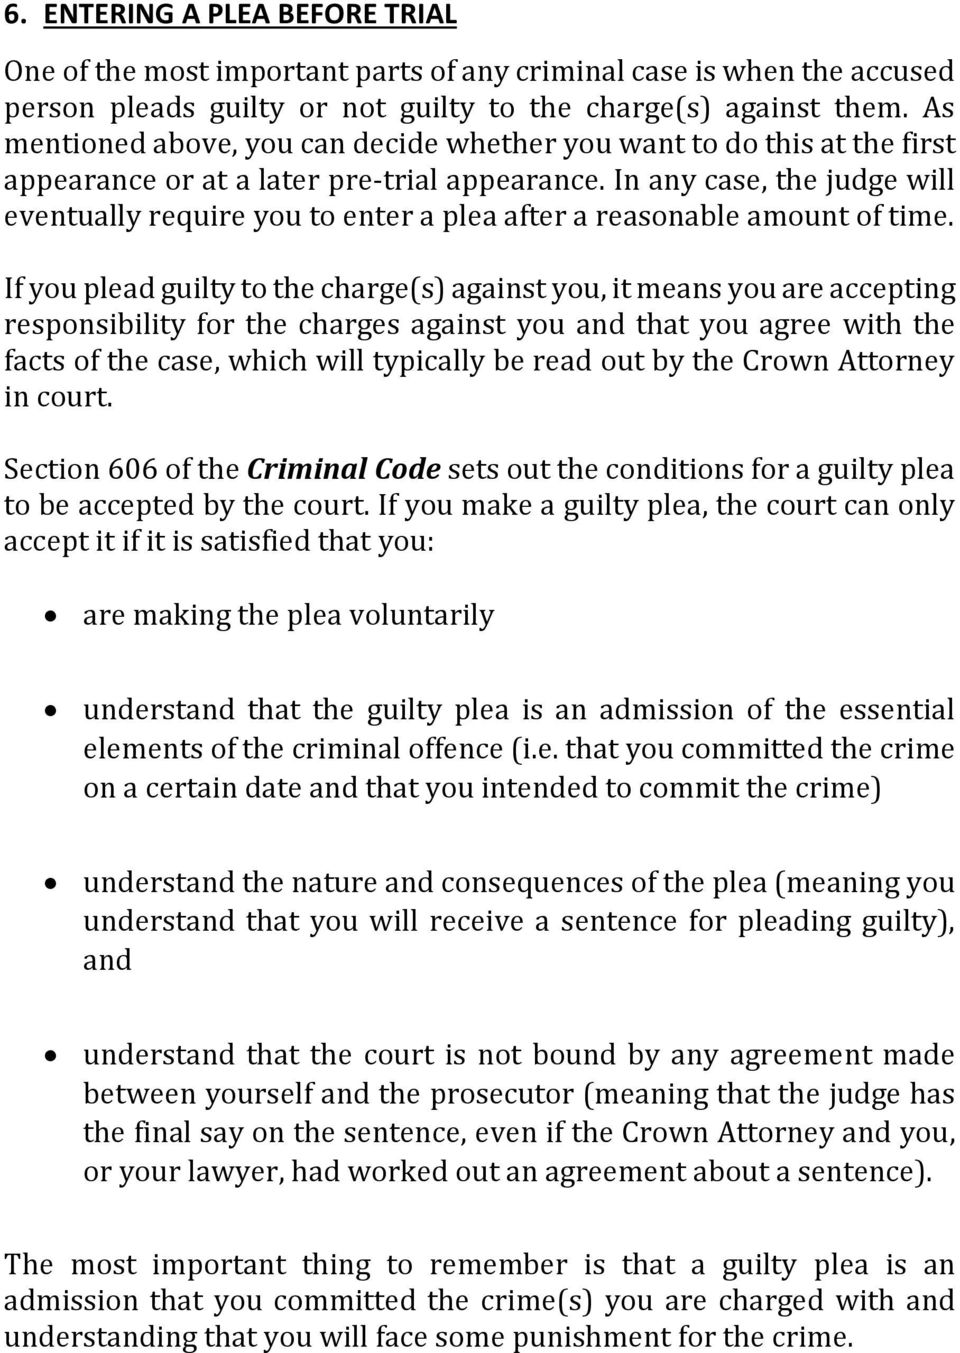 In any case, the judge will eventually require you to enter a plea after a reasonable amount of time.